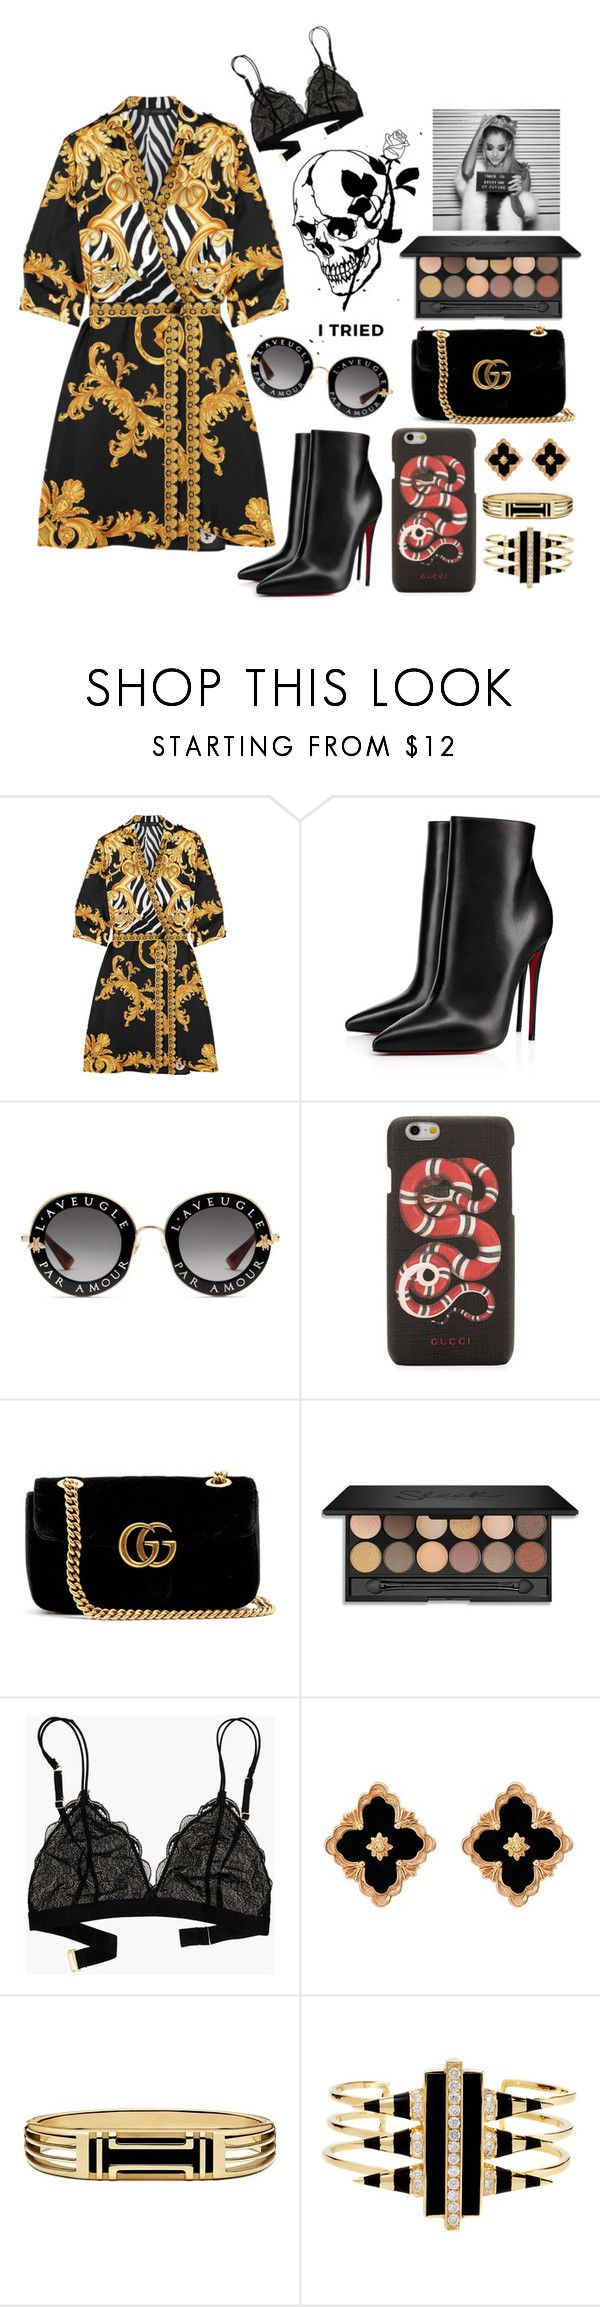 """Live life lavishly"" by doogenfly ❤ liked on Polyvore featuring Versace, Christian Louboutin, Gucci, Madewell, Buccellati, Tory Burch and Noir Jewelry"